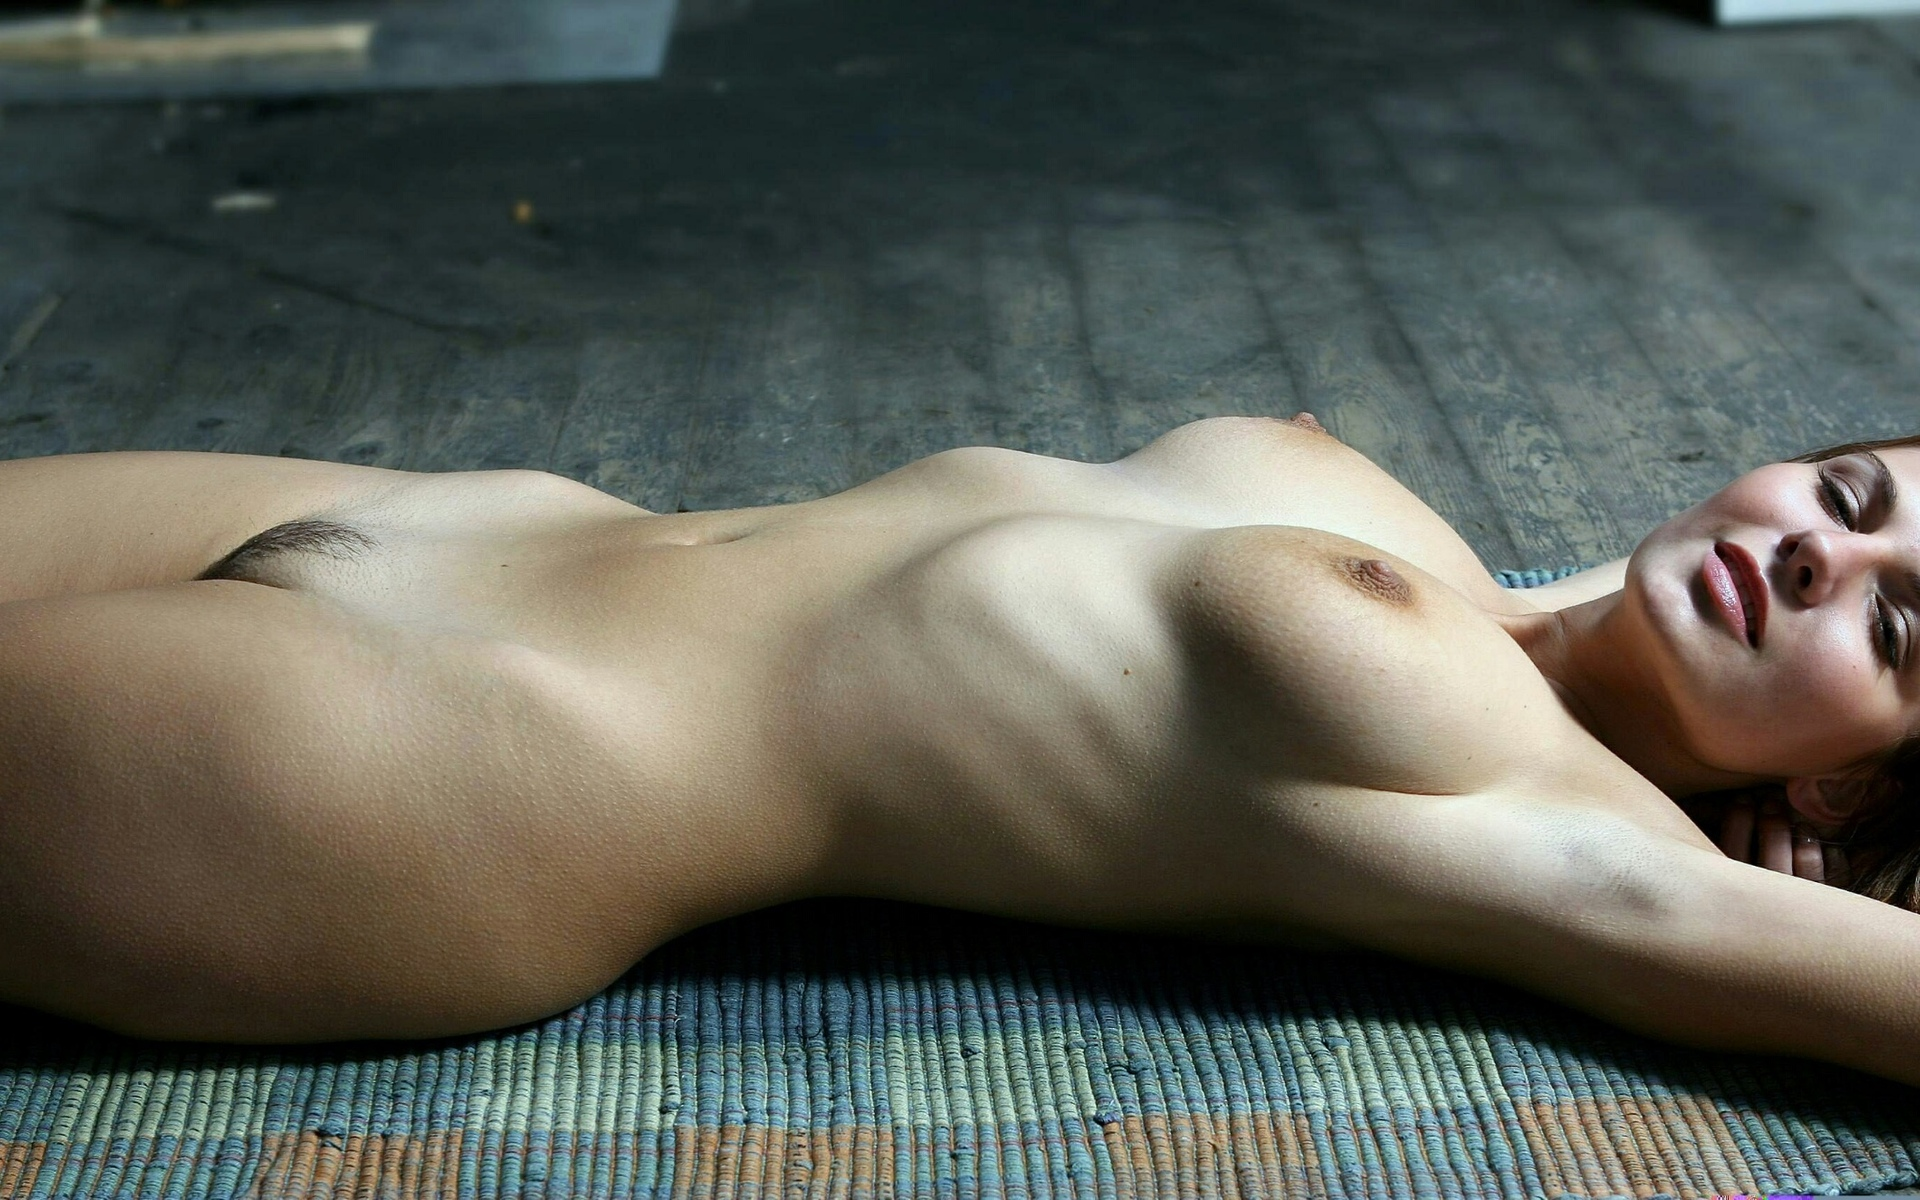 Pictures of uncensored naked girls whole body